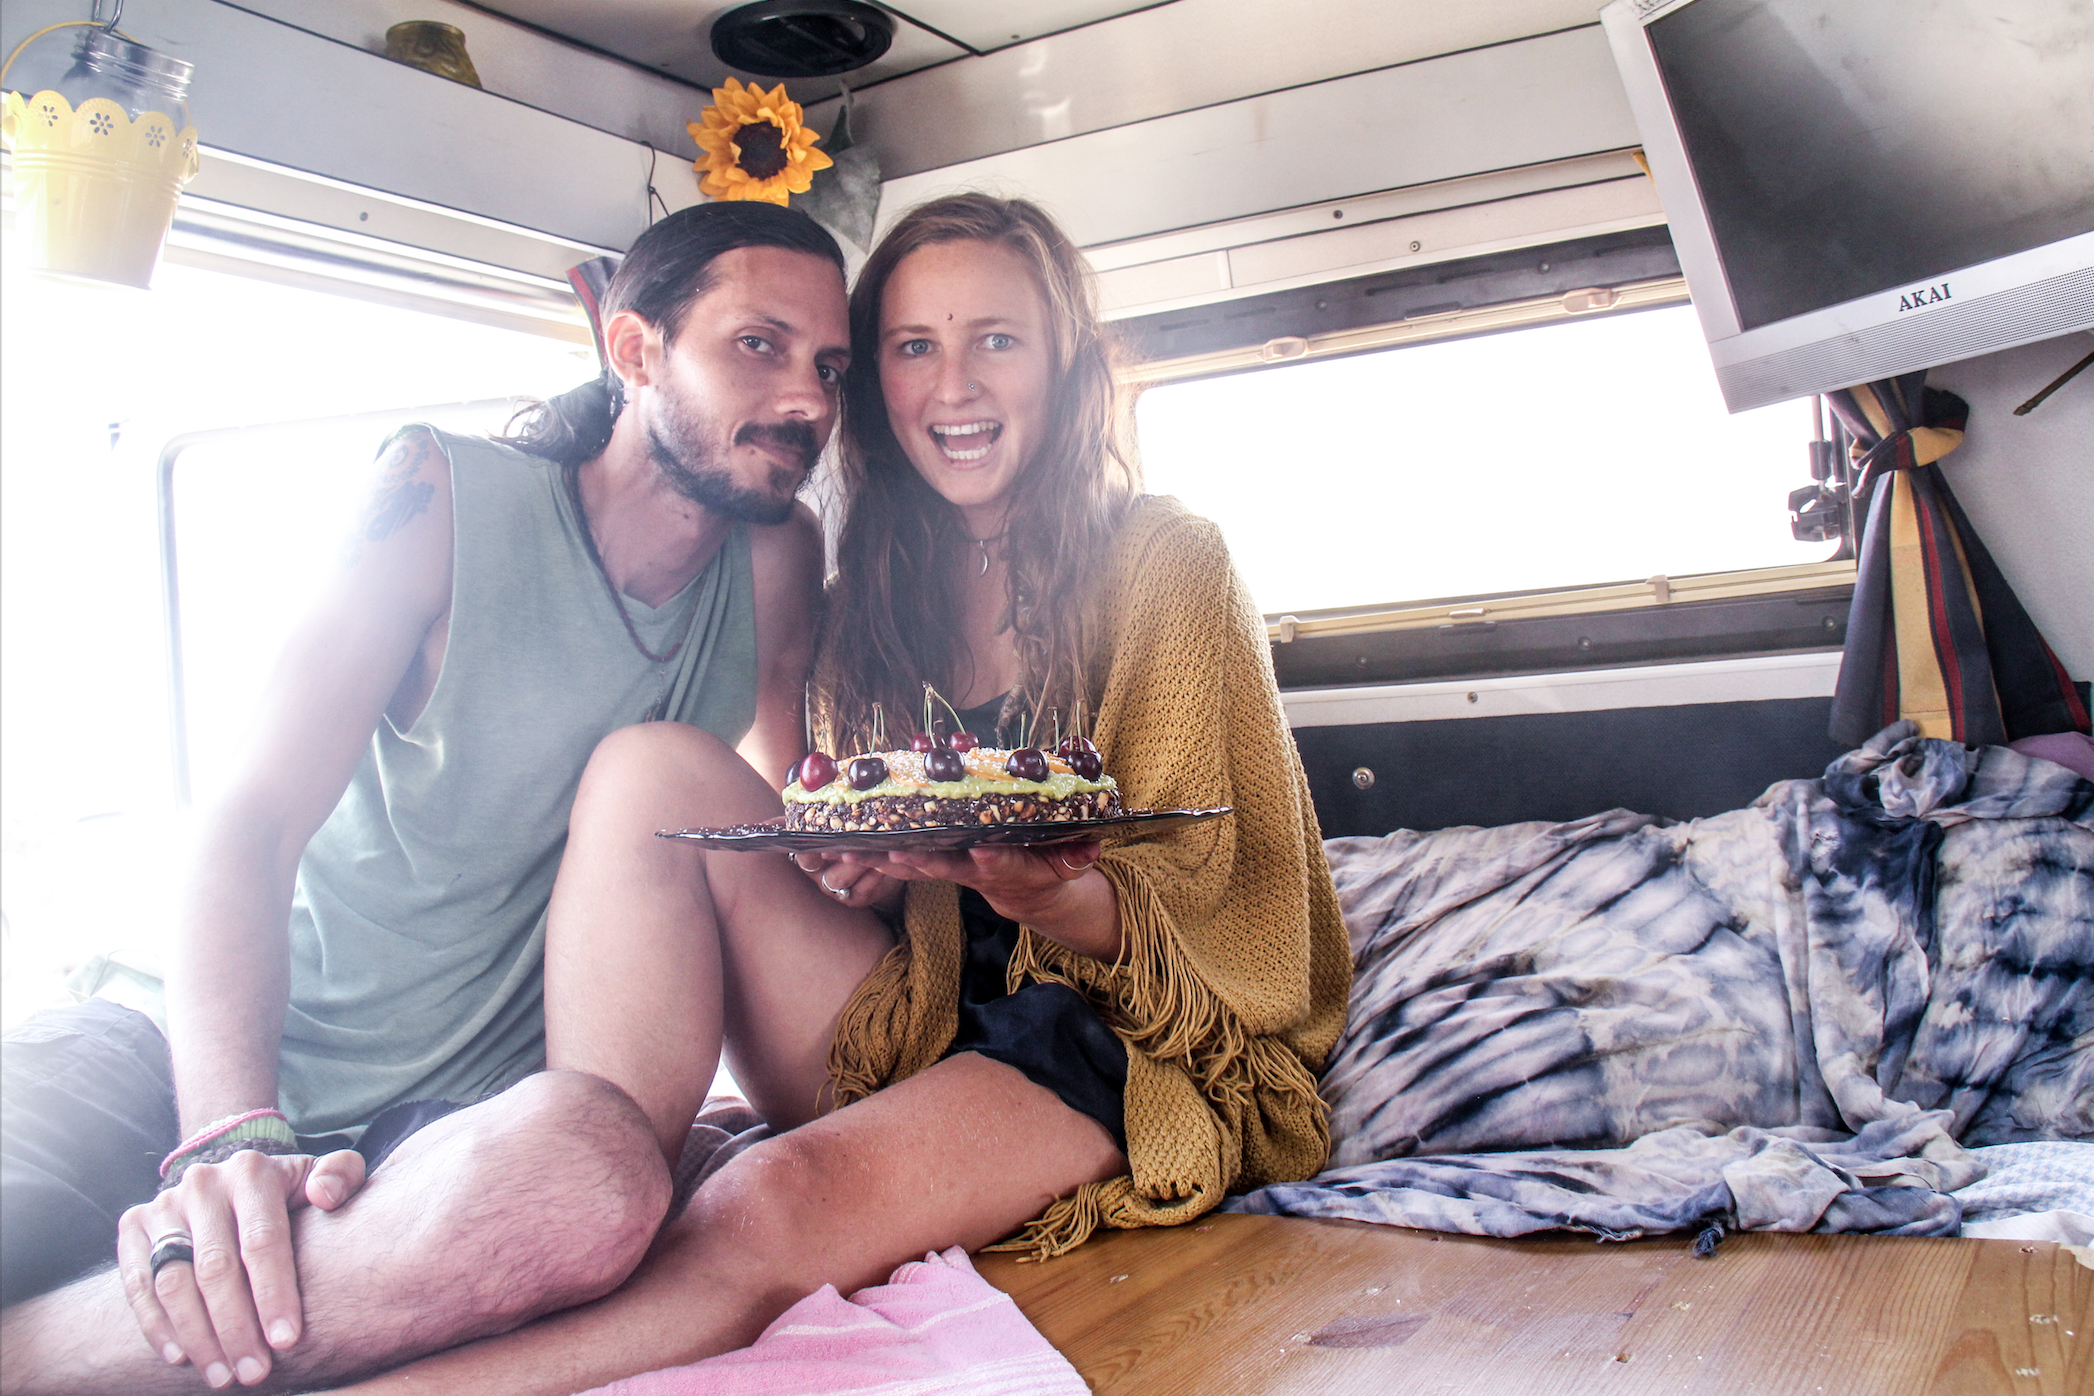 Alejandro and I with a vegan raw cake we made in the van, sugar free, gluten free, and full of love. We shared this at the beach were we were staying with the van, tring to promote a positive vegan message. Contact us for recipe of cake or ideas on how to share the vegan message XX